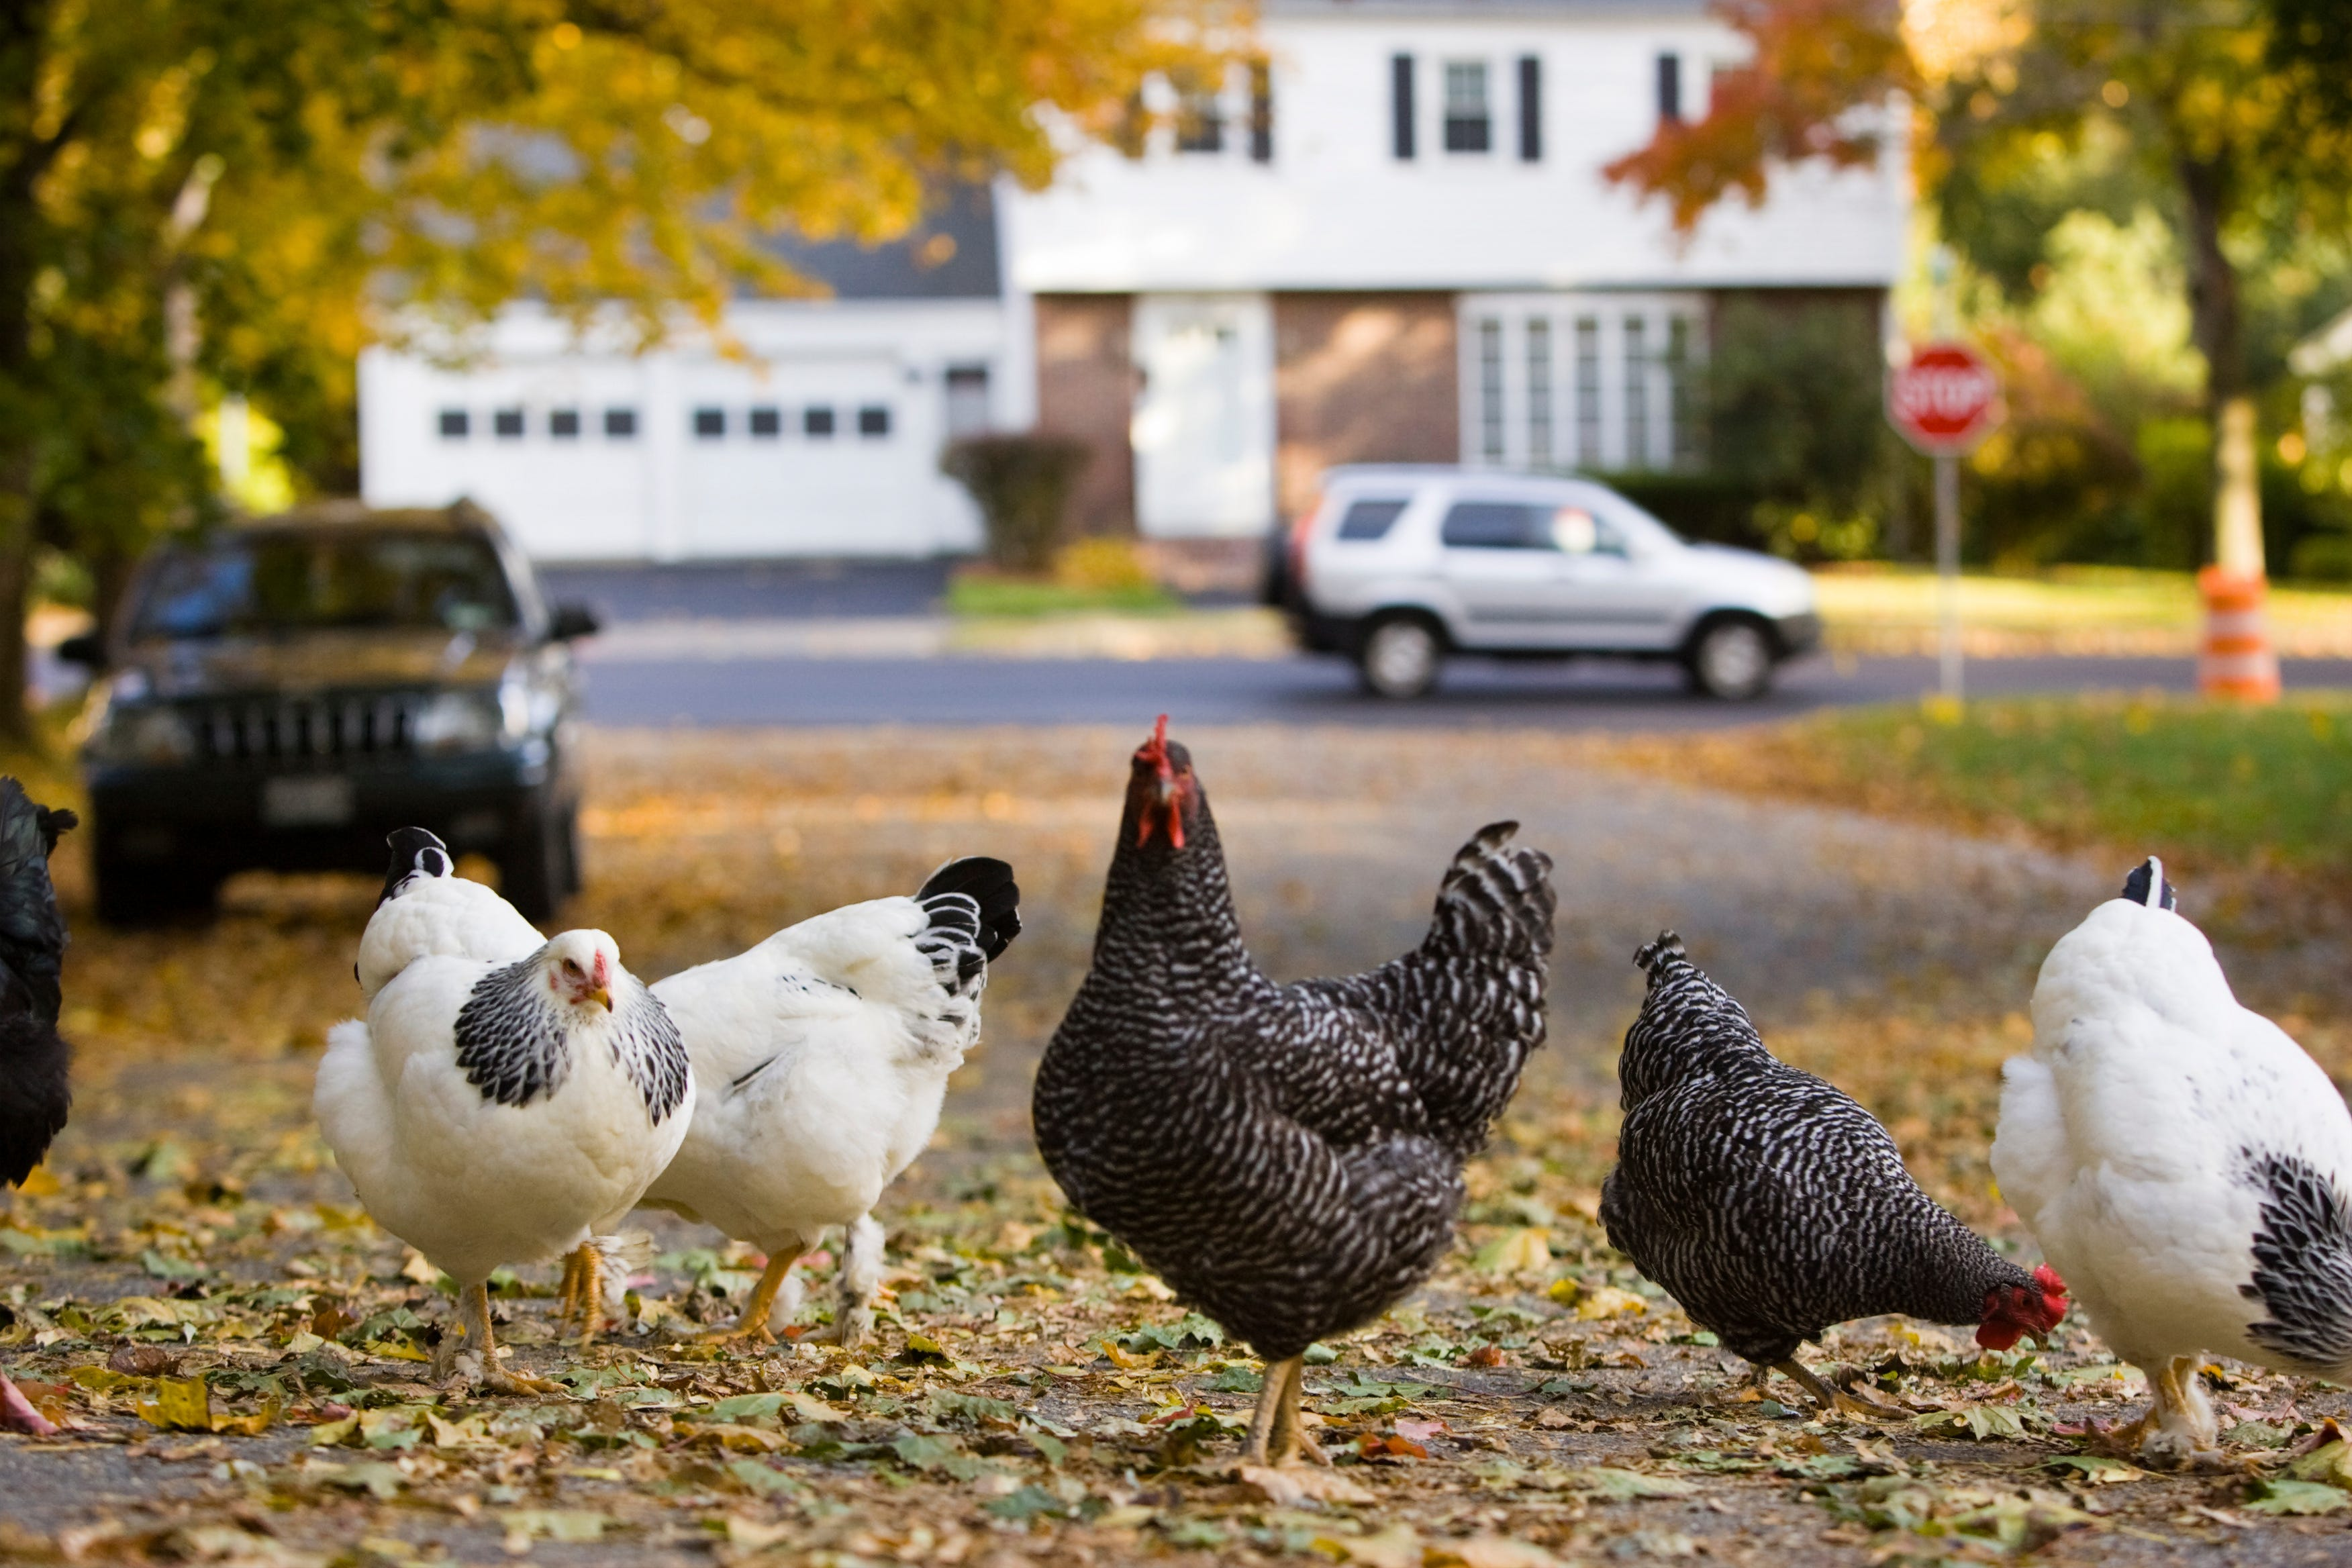 Over 200 Salmonella Infections Linked To Backyard Chickens, CDC Warns